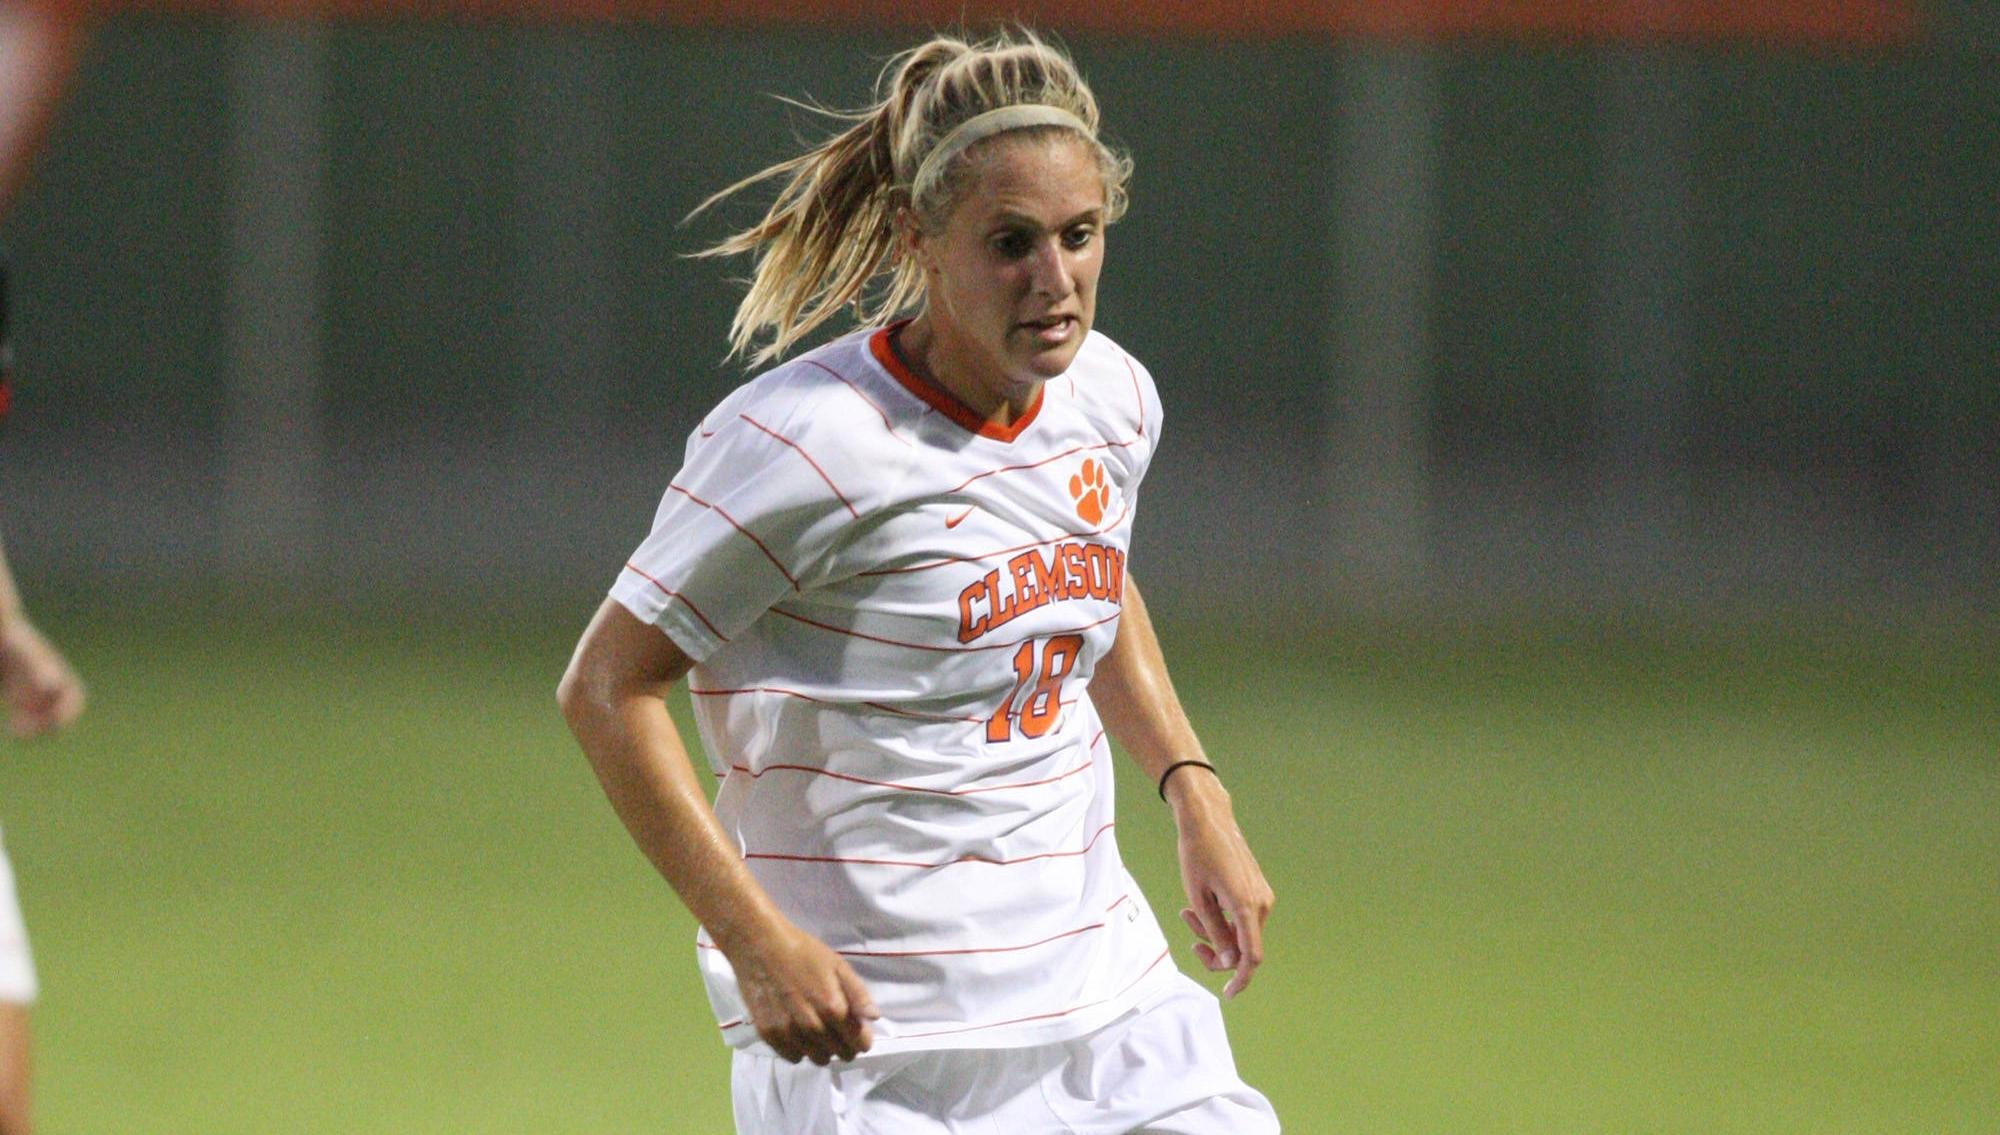 Clemson Women's Soccer Team to Open 2012 Season Friday at Historic Riggs Field